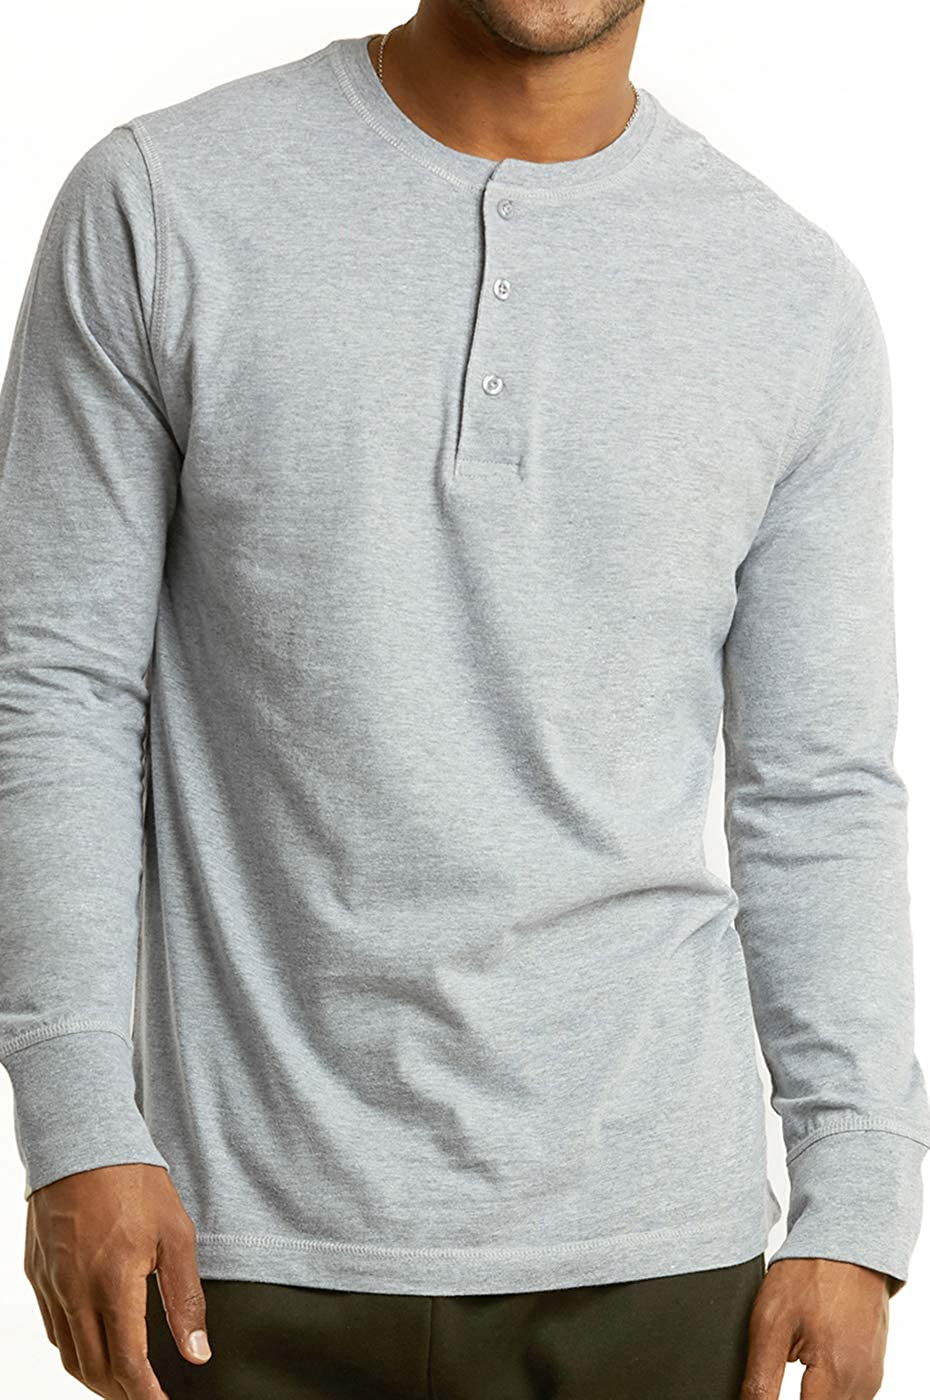 Mens Casual Slim Fit Long Sleeve Cotton Henley T Shirt